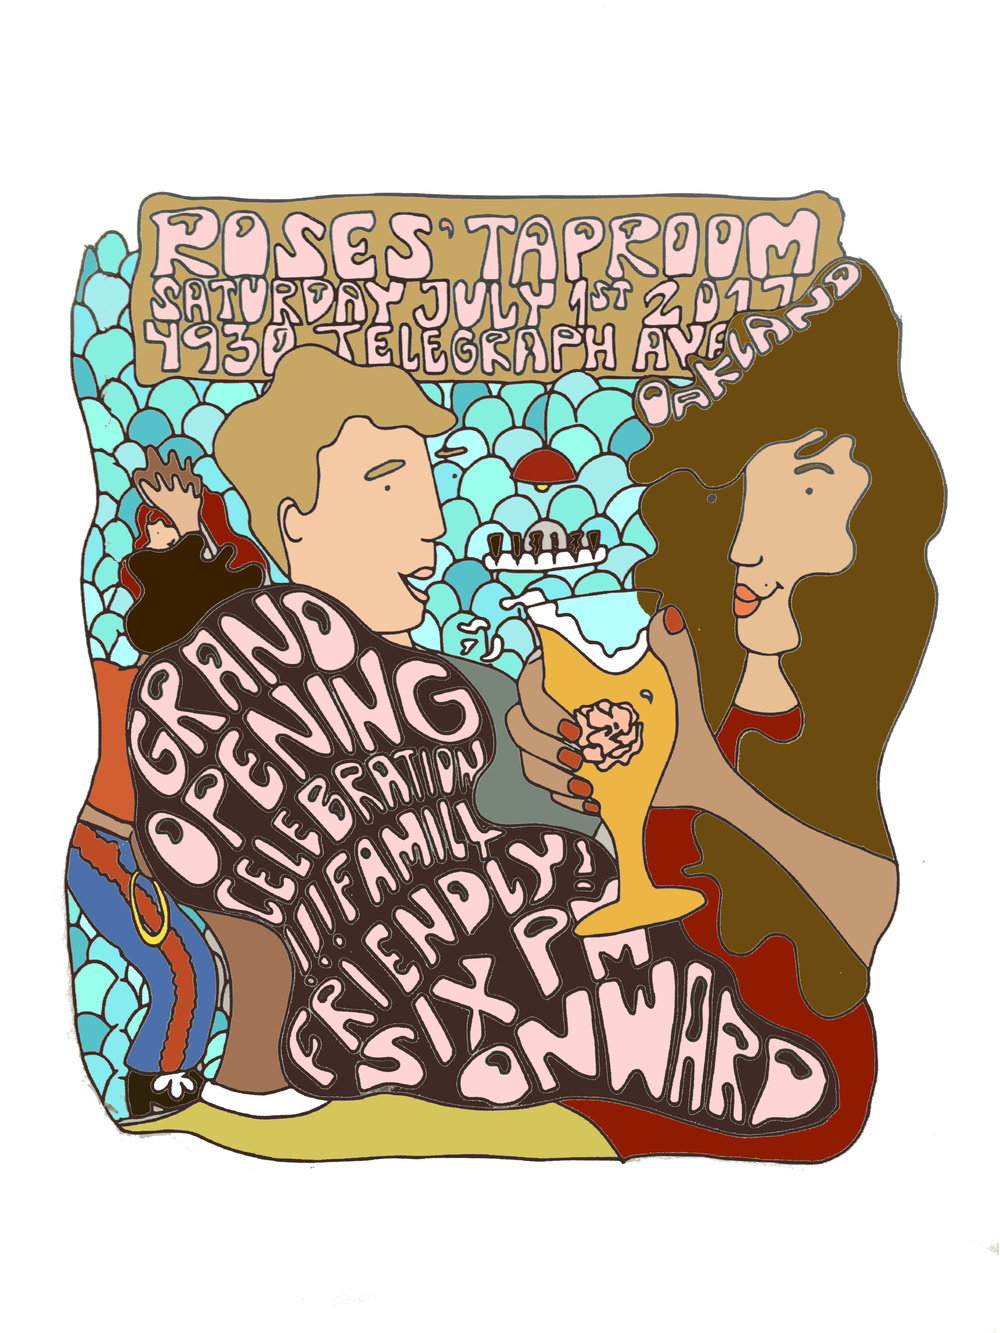 Copy of Grand Opening Poster, Roses' Taproom